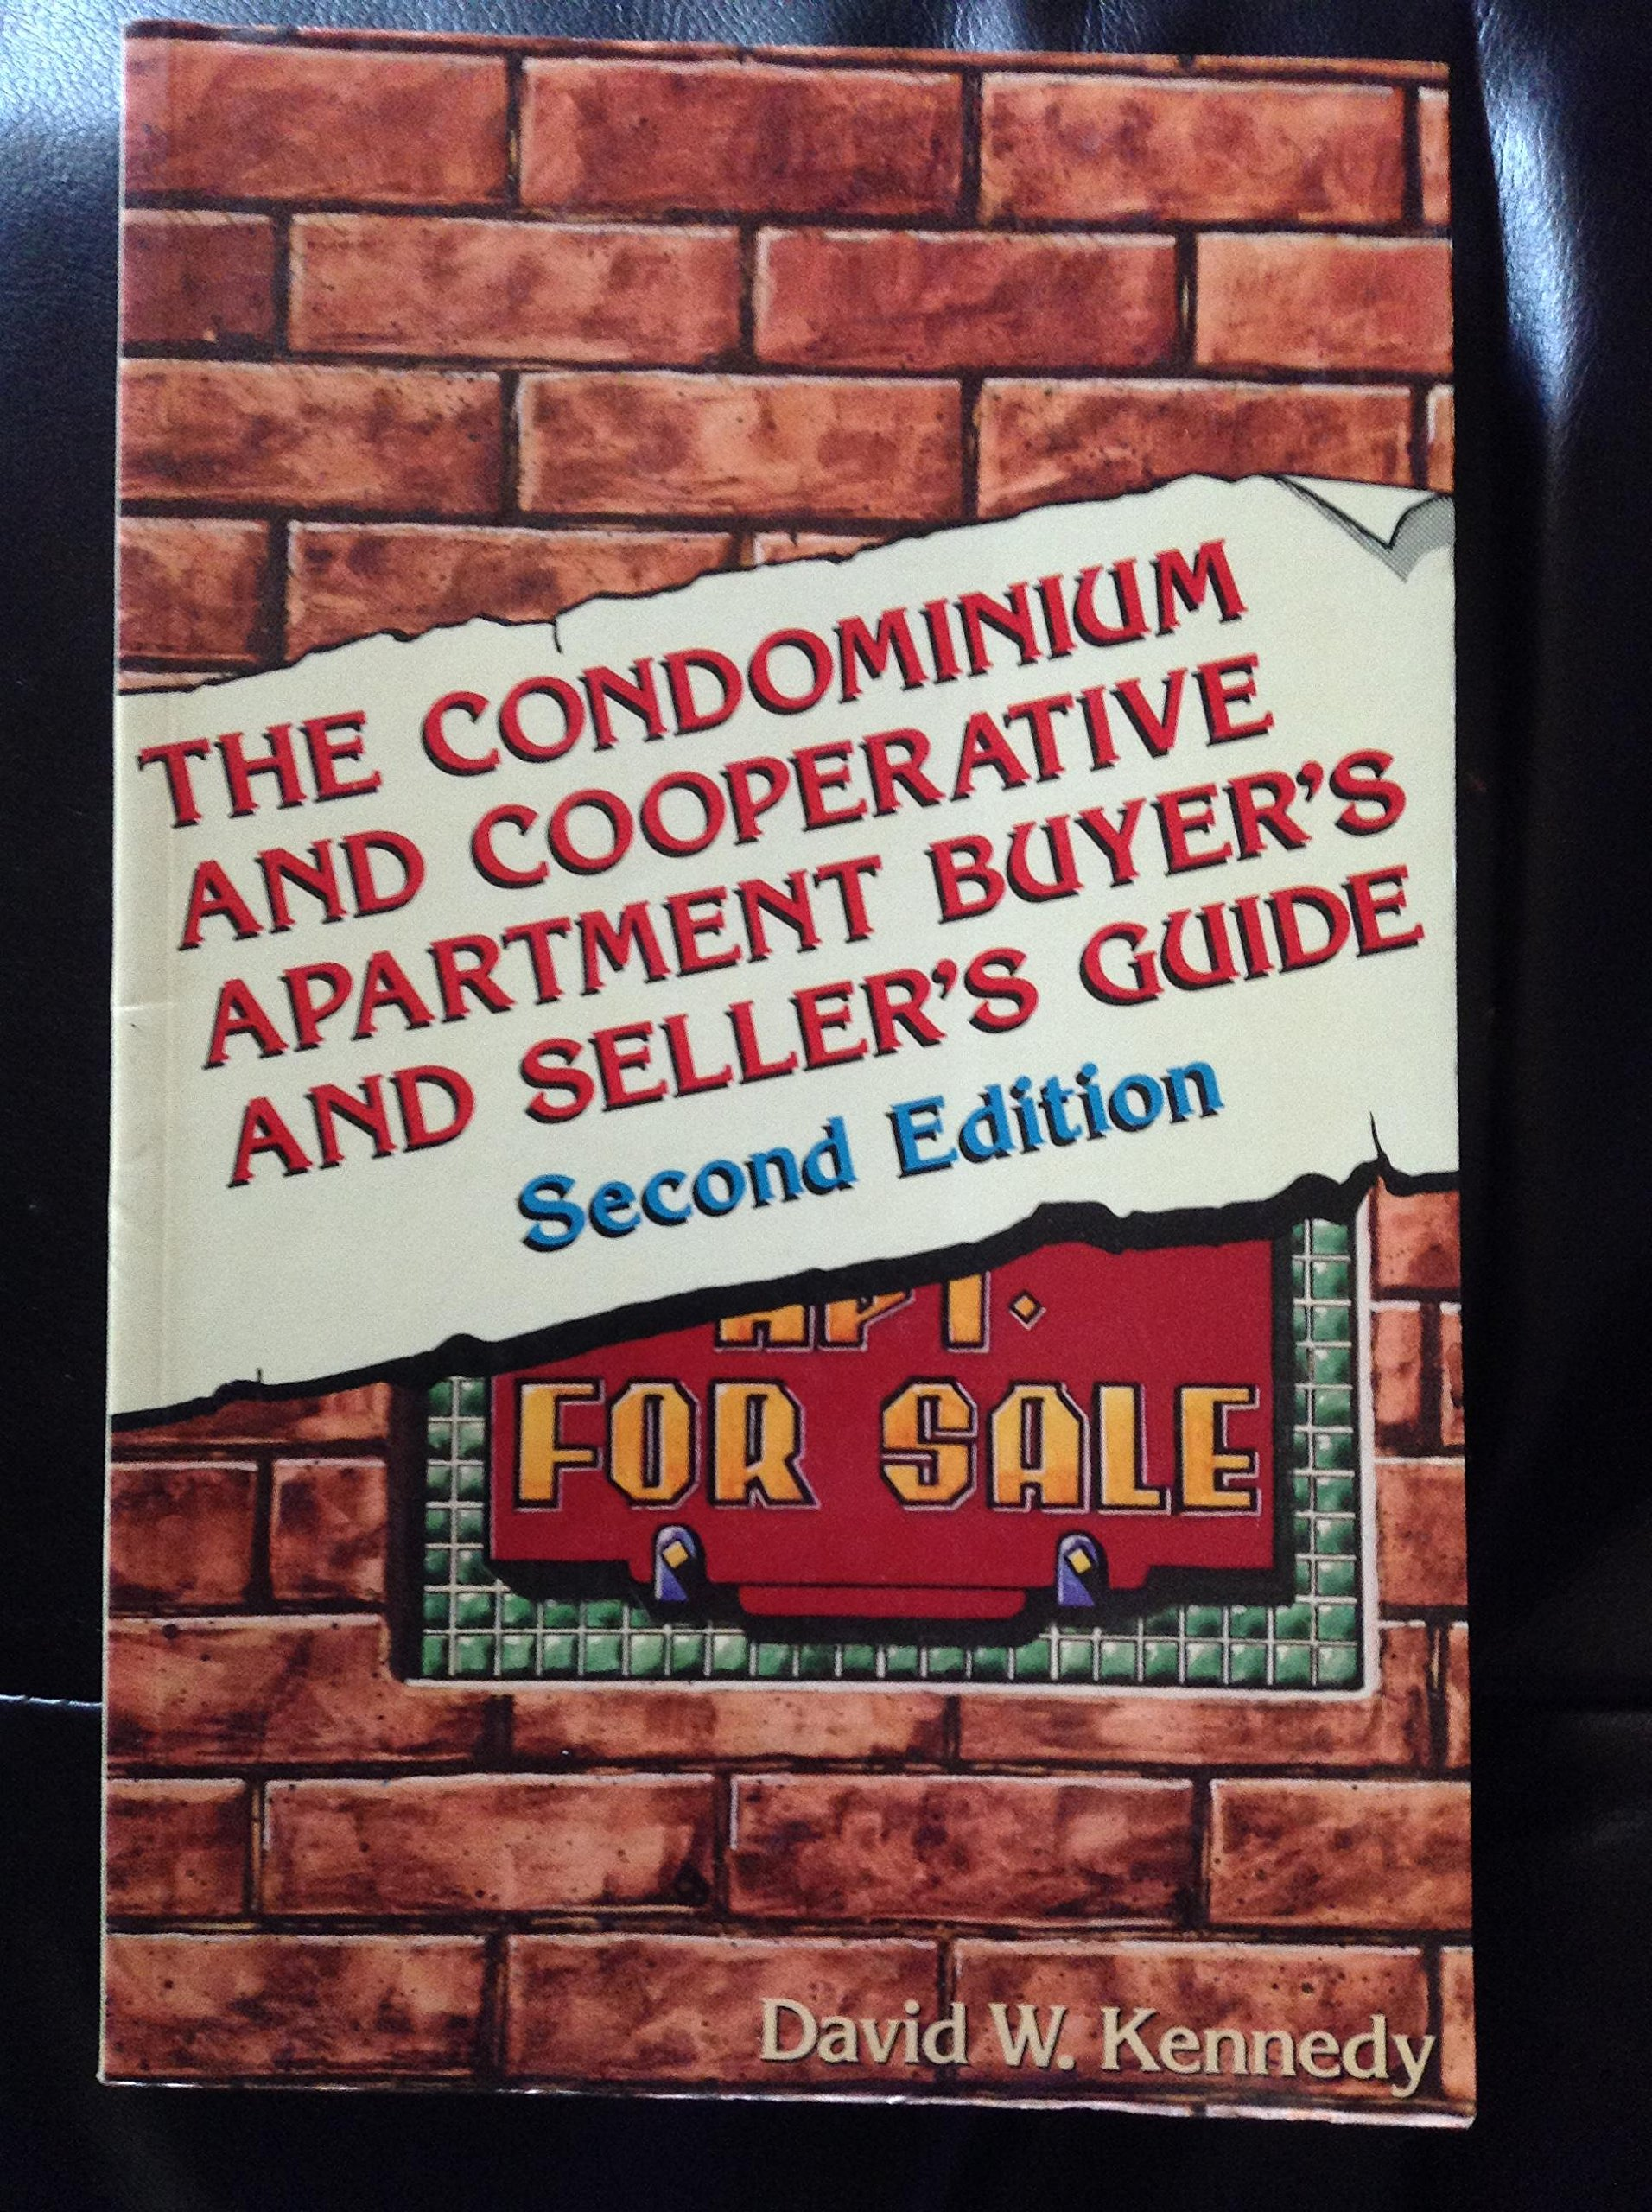 The Condominium and Cooperative Apartment Buyer's and Sellers Guide